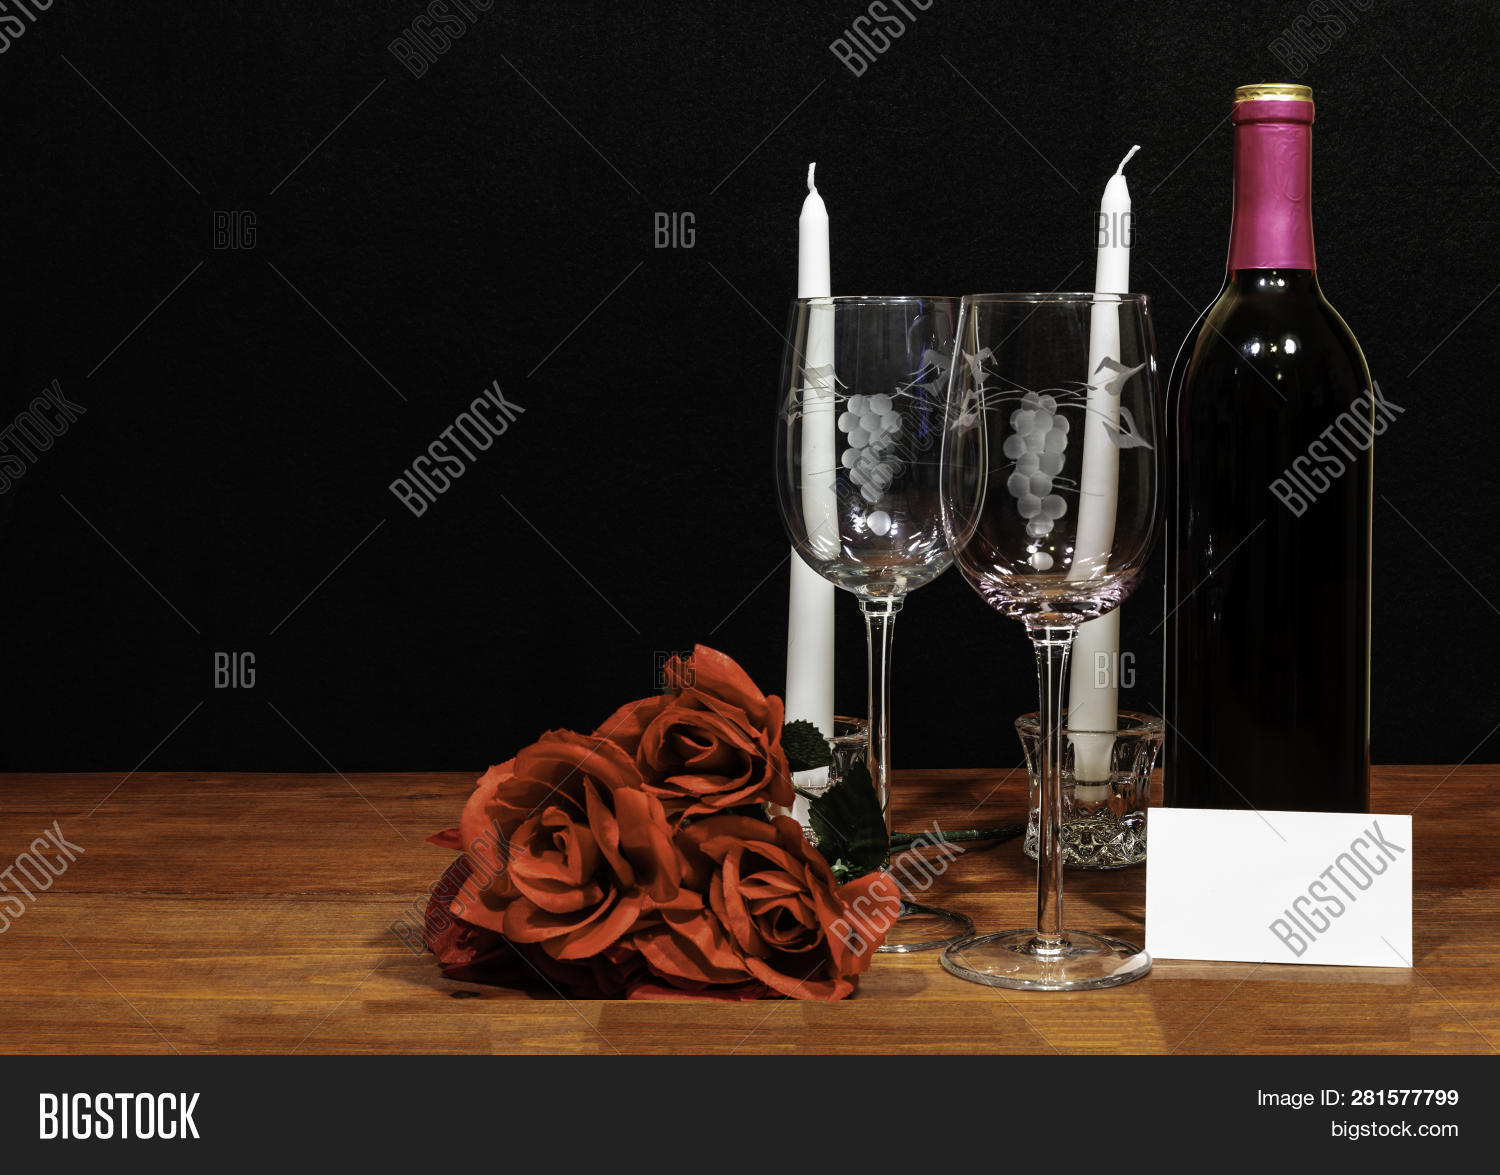 3a8a1c1b61bd Beautiful etched wine glasses and bottle of red wine, white candles and  bouquet of red roses on wooden table with card on dark background.